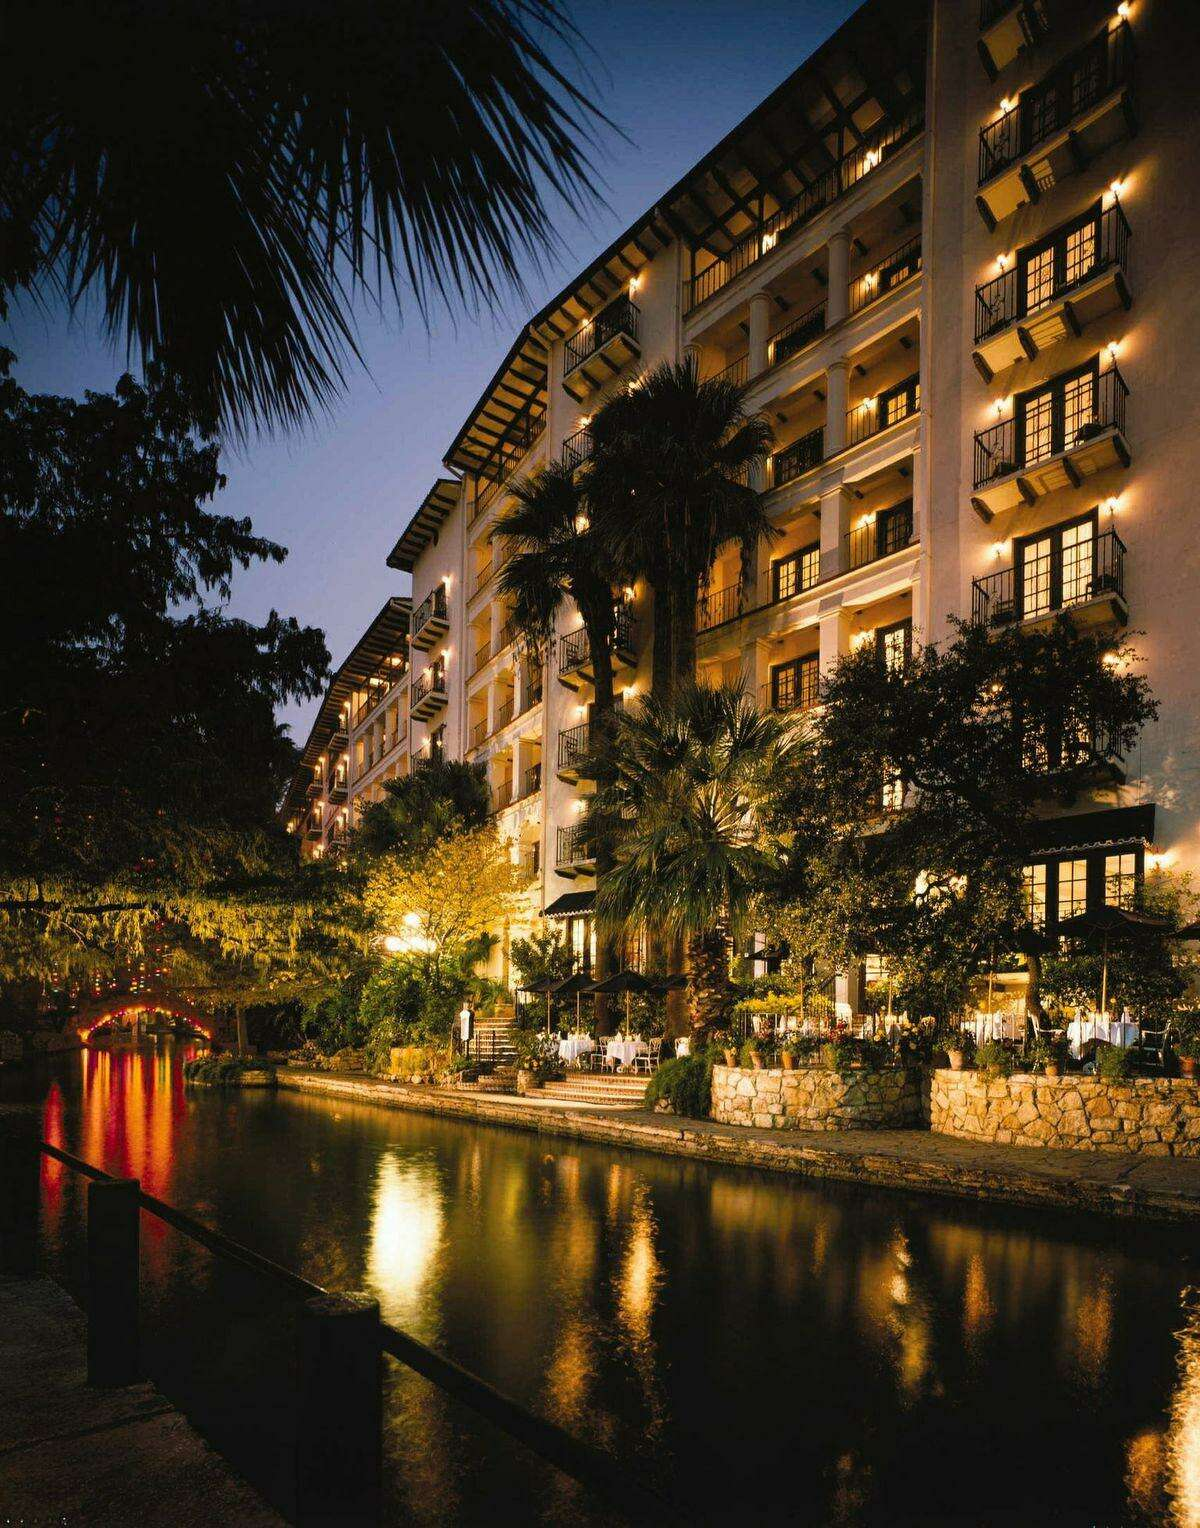 The Omni La Mansión Del Rio on San Antonio's River Walk and two affiliated companies are accused of negligence in a lawsuit that alleges a toddler was struck in the head by a ketchup bottle that fell from a fifth-floor balcony in 2018.